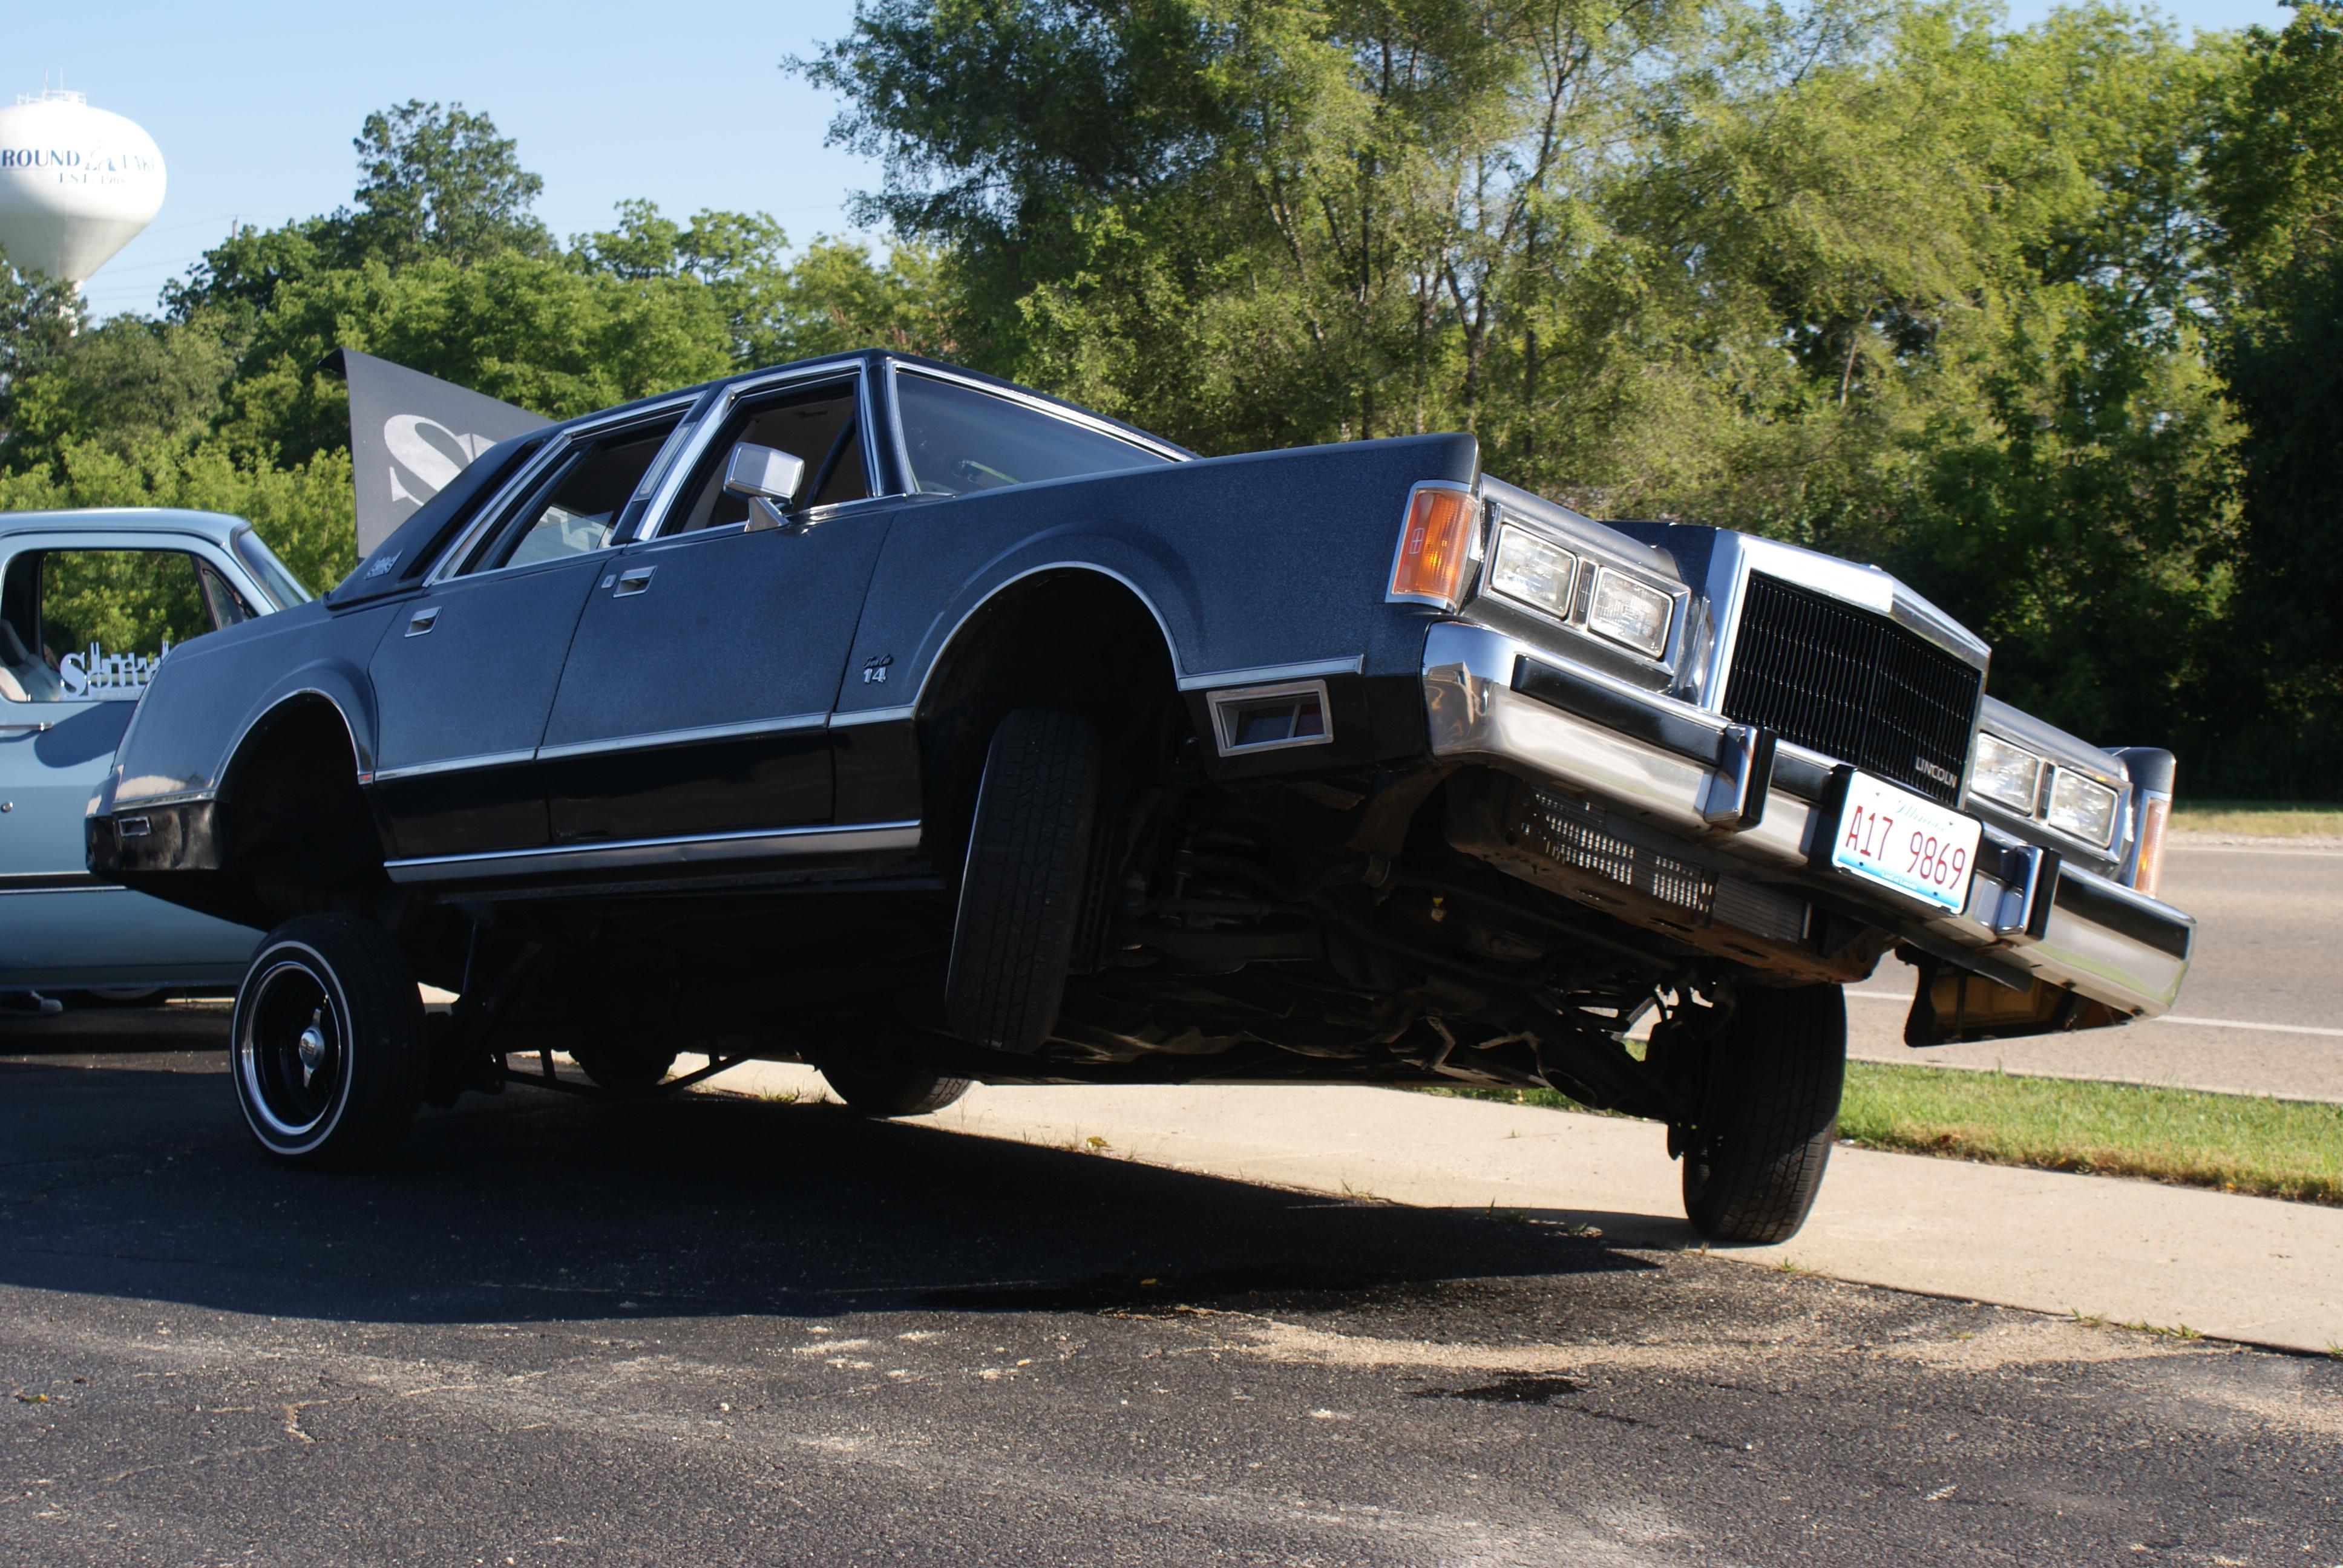 Luneyd 1989 Lincoln Town Car Specs Photos Modification